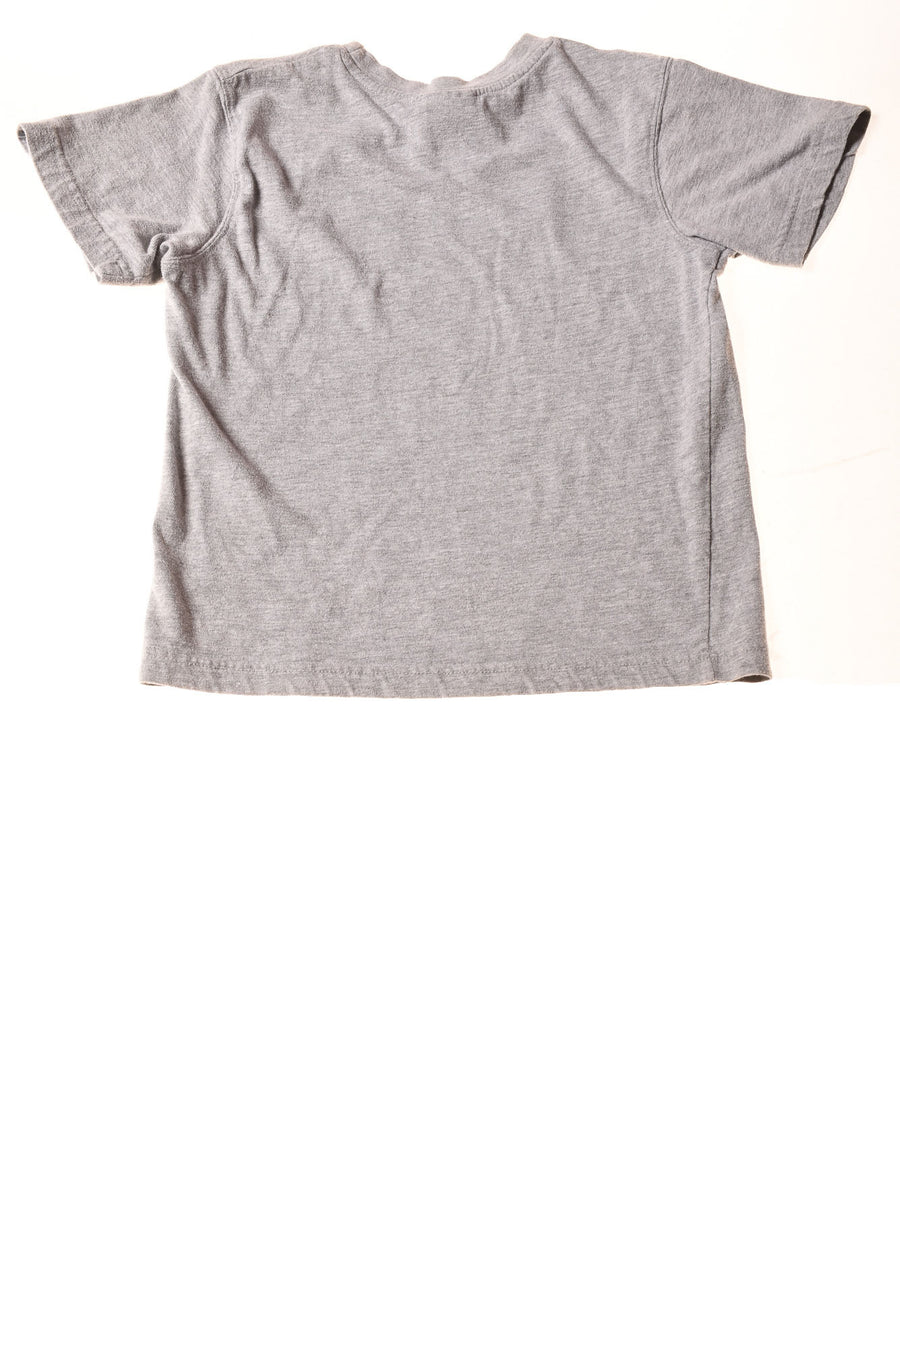 USED Genuine Merchandise Boy's Shirt X-Small Gray